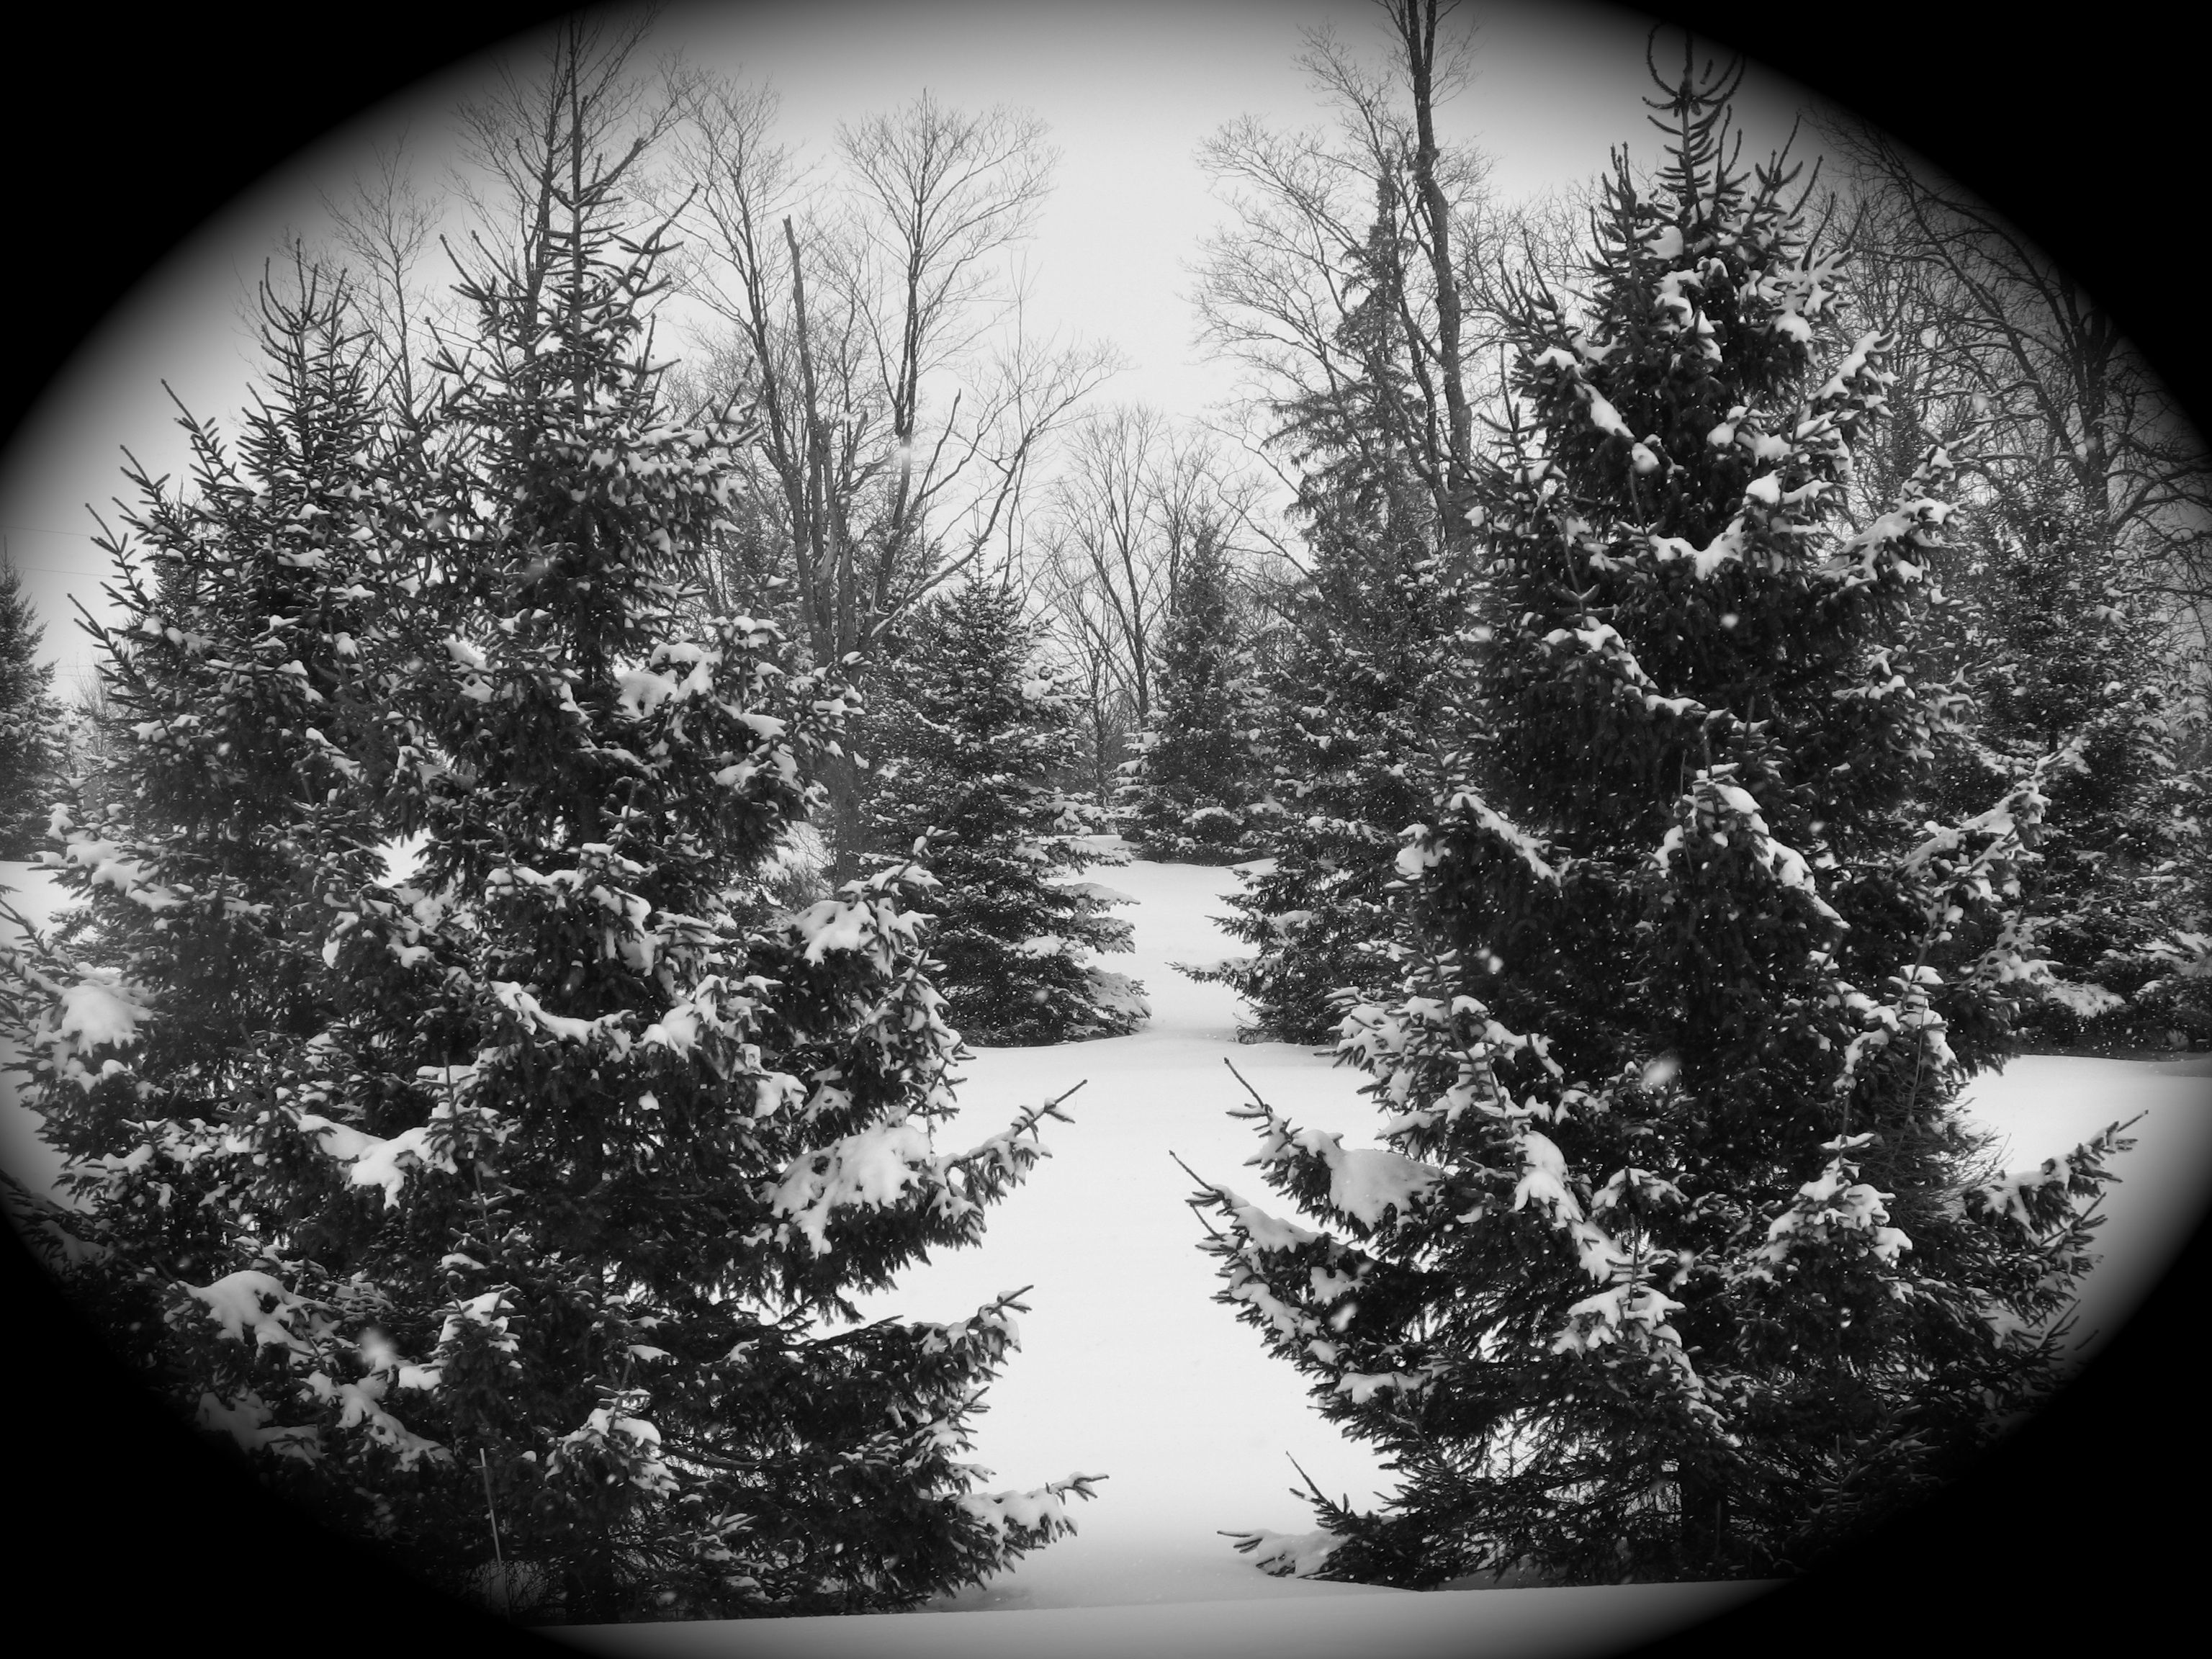 Pine trees in winter. | Pine trees | Pinterest Pictures Trees In Winter Pinterest